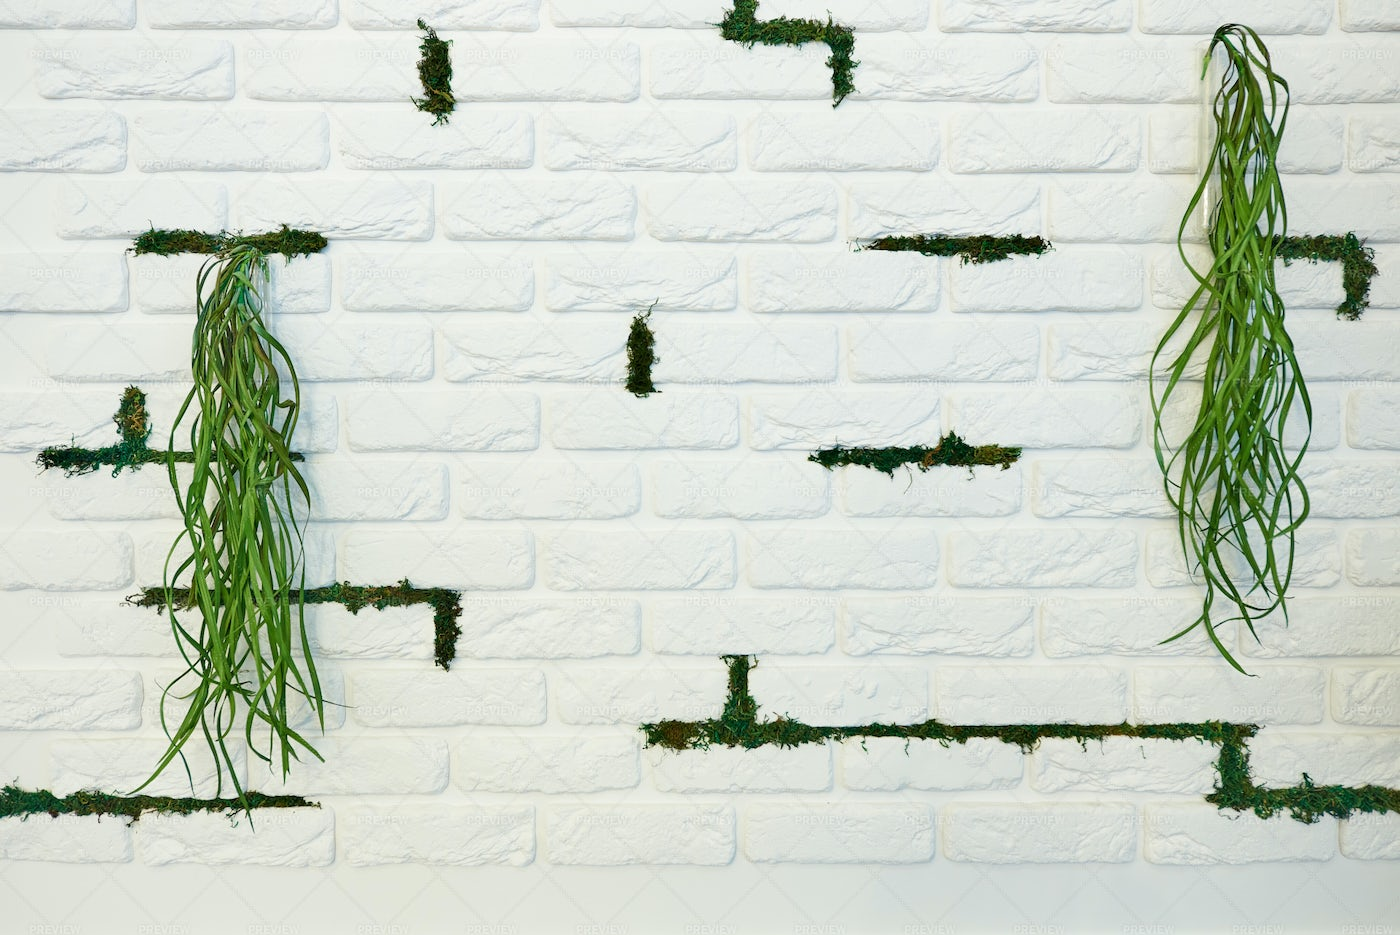 Wall With Greenery: Stock Photos